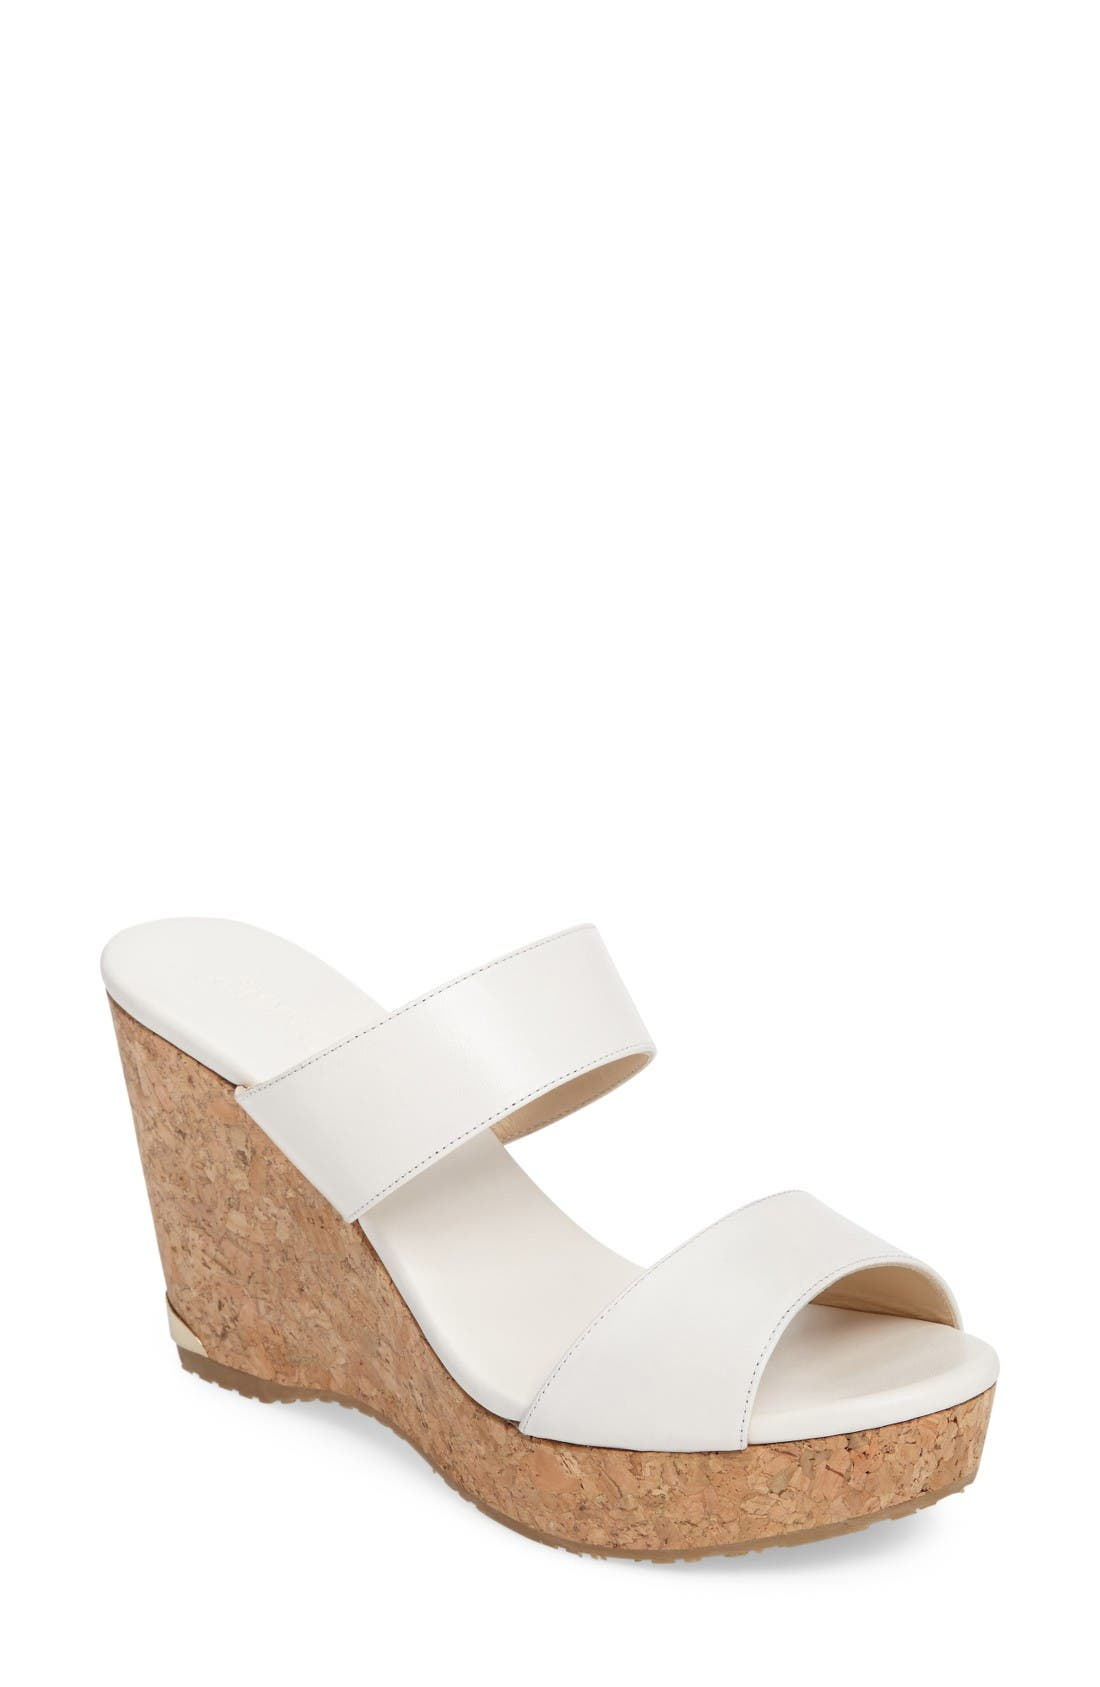 Main Image - Jimmy Choo Parker Wedge Sandal (Women)